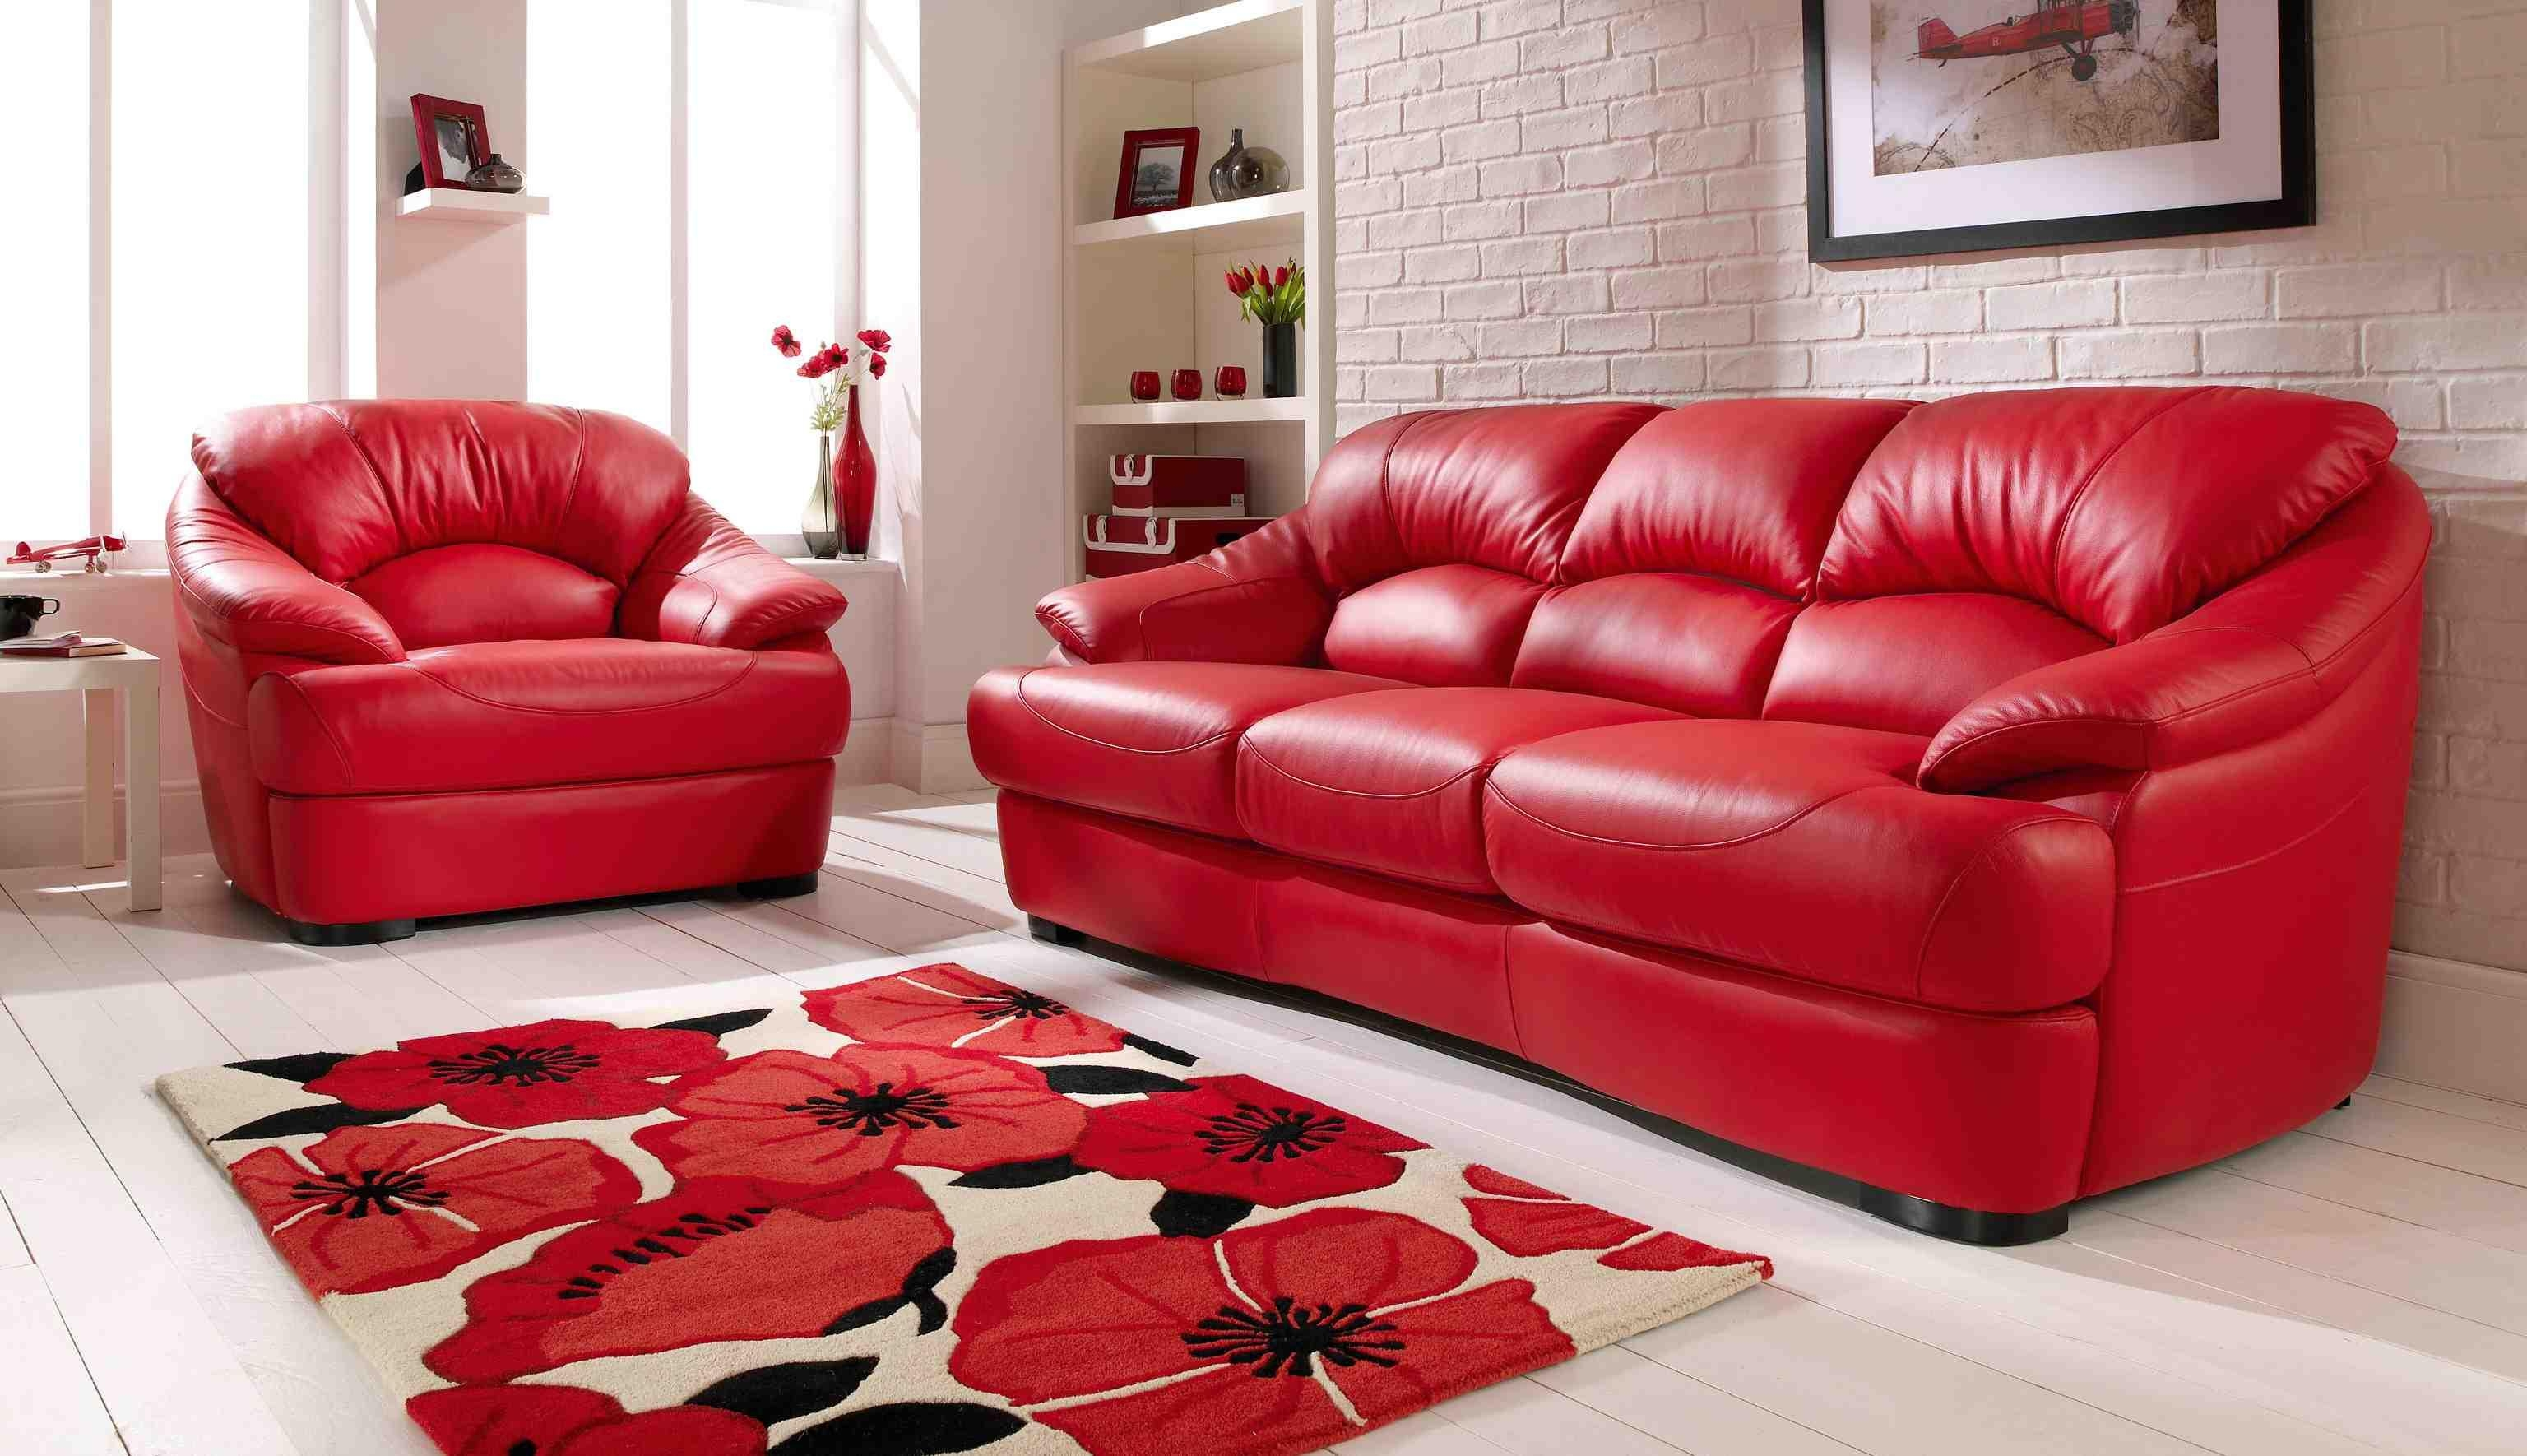 Leather Couch Decorating Ideas Living Room – Destroybmx With Dark Red Leather Sofas (View 15 of 20)